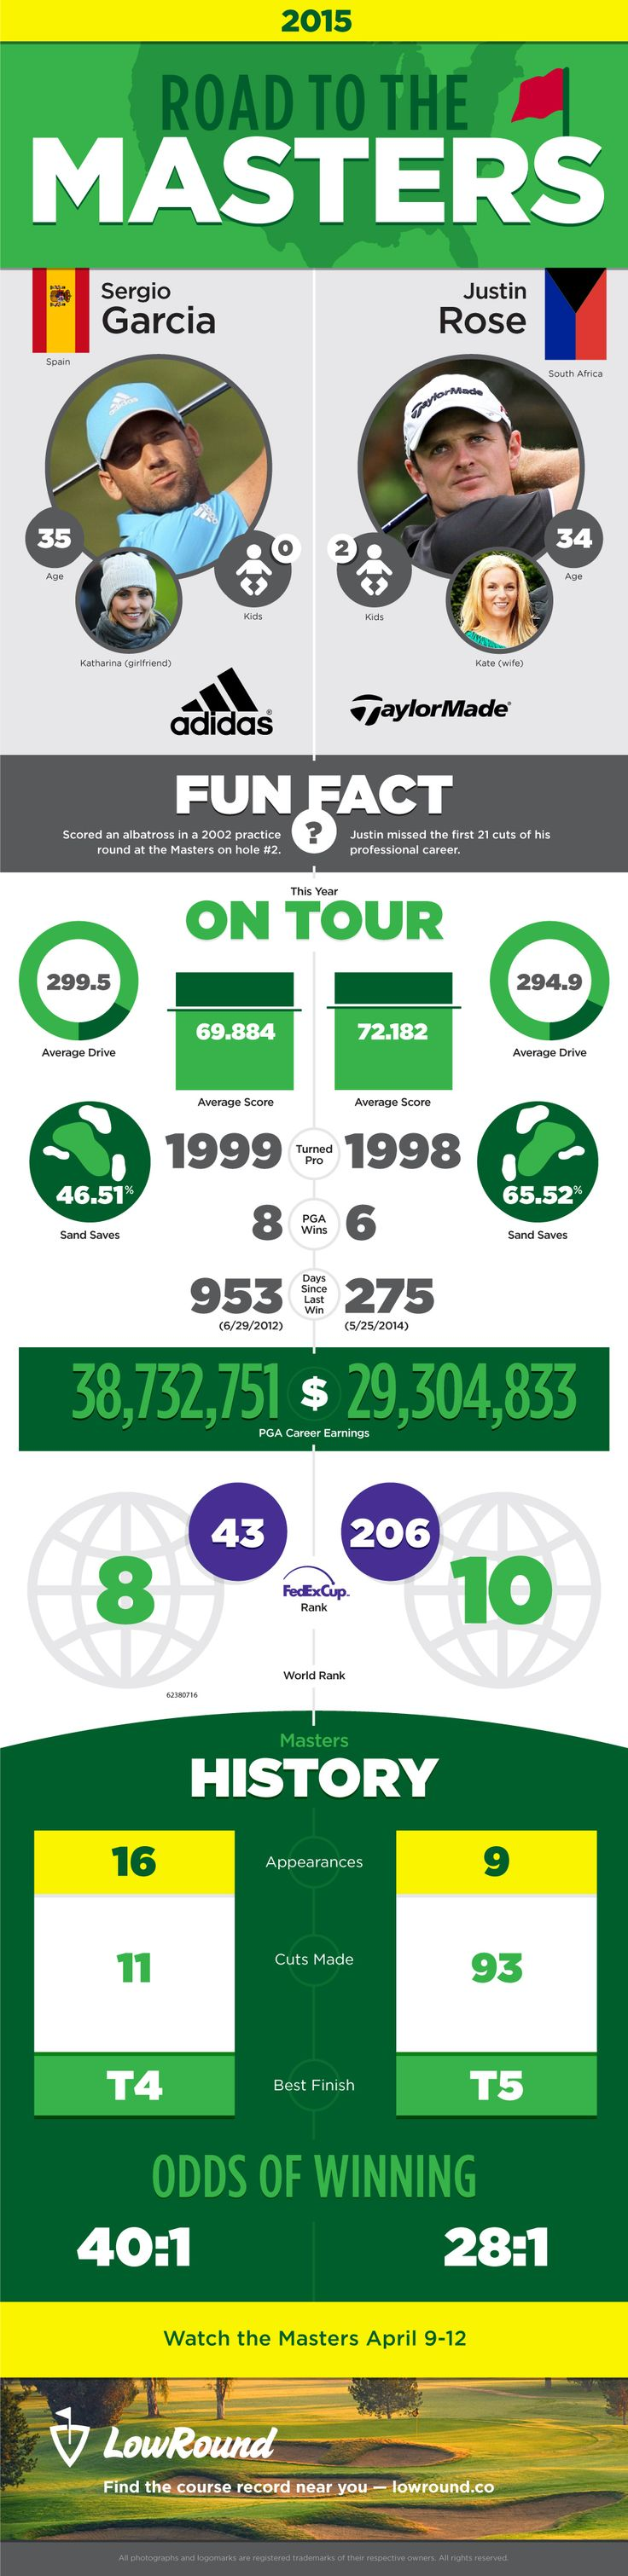 LowRound.co - Golf Infographic - Road to the Masters 2015 - Sergio Garcia and Justin Rose